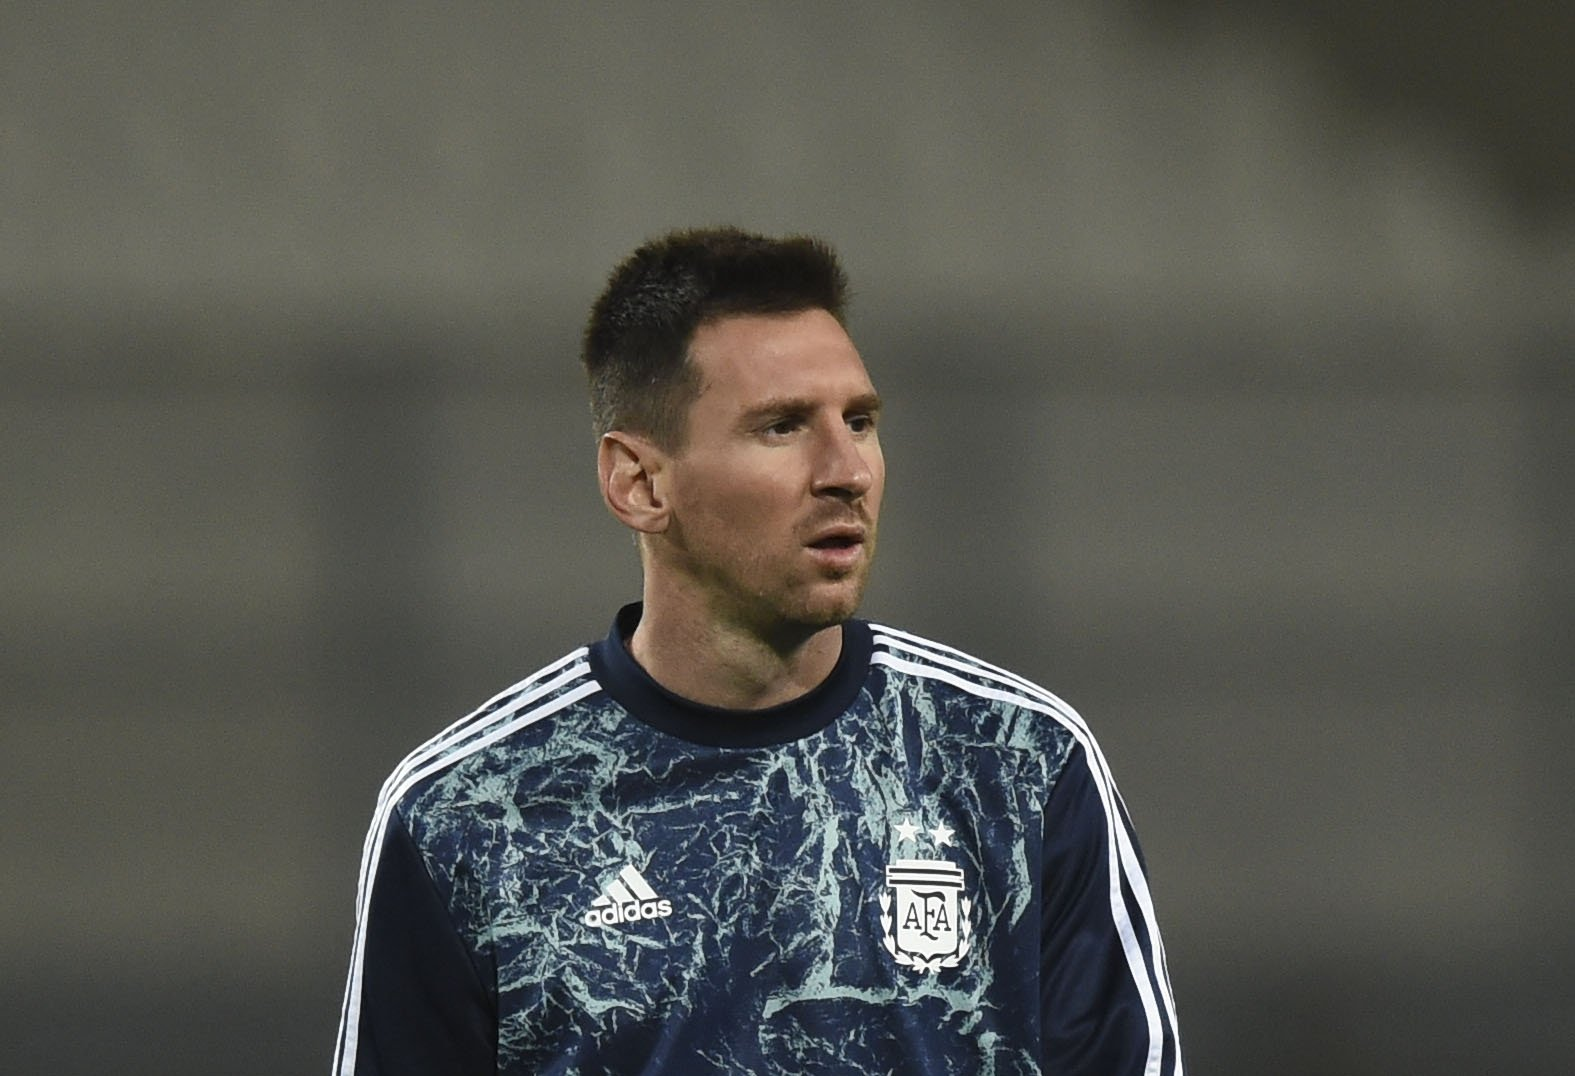 Argentina's Lionel Messi warms up before the closed-door 2022 FIFA World Cup South American qualifier football match between Peru and Argentina at the National Stadium in Lima, Peru, Nov. 17, 2020. (AFP Photo)